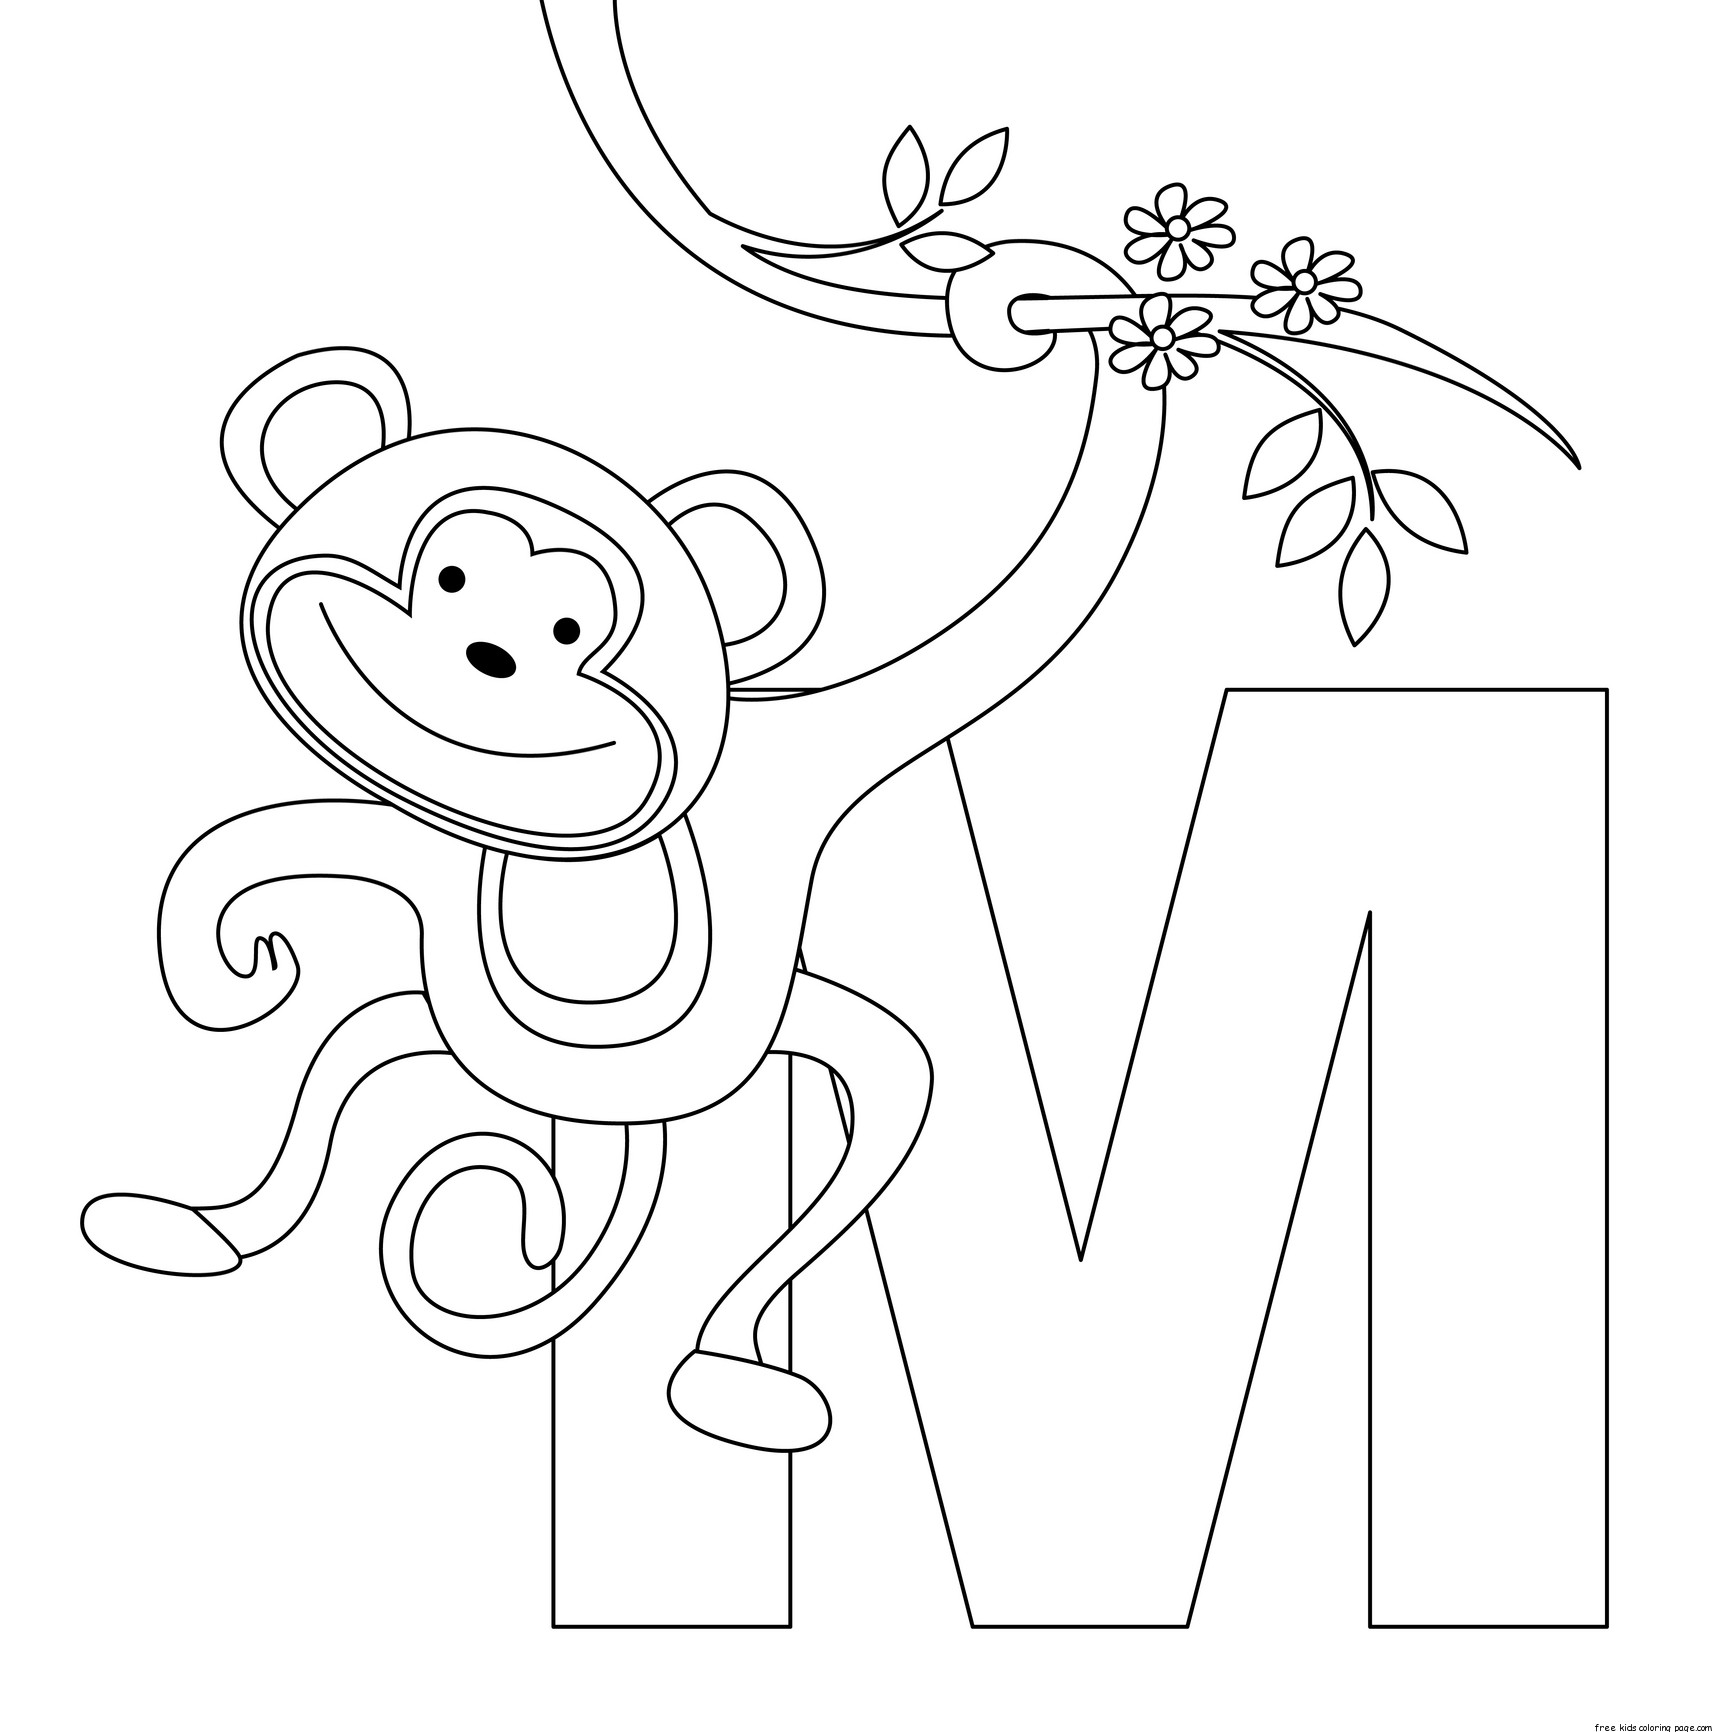 coloring alphabet online printable animal alphabet letters m coloring pagesfree online alphabet coloring